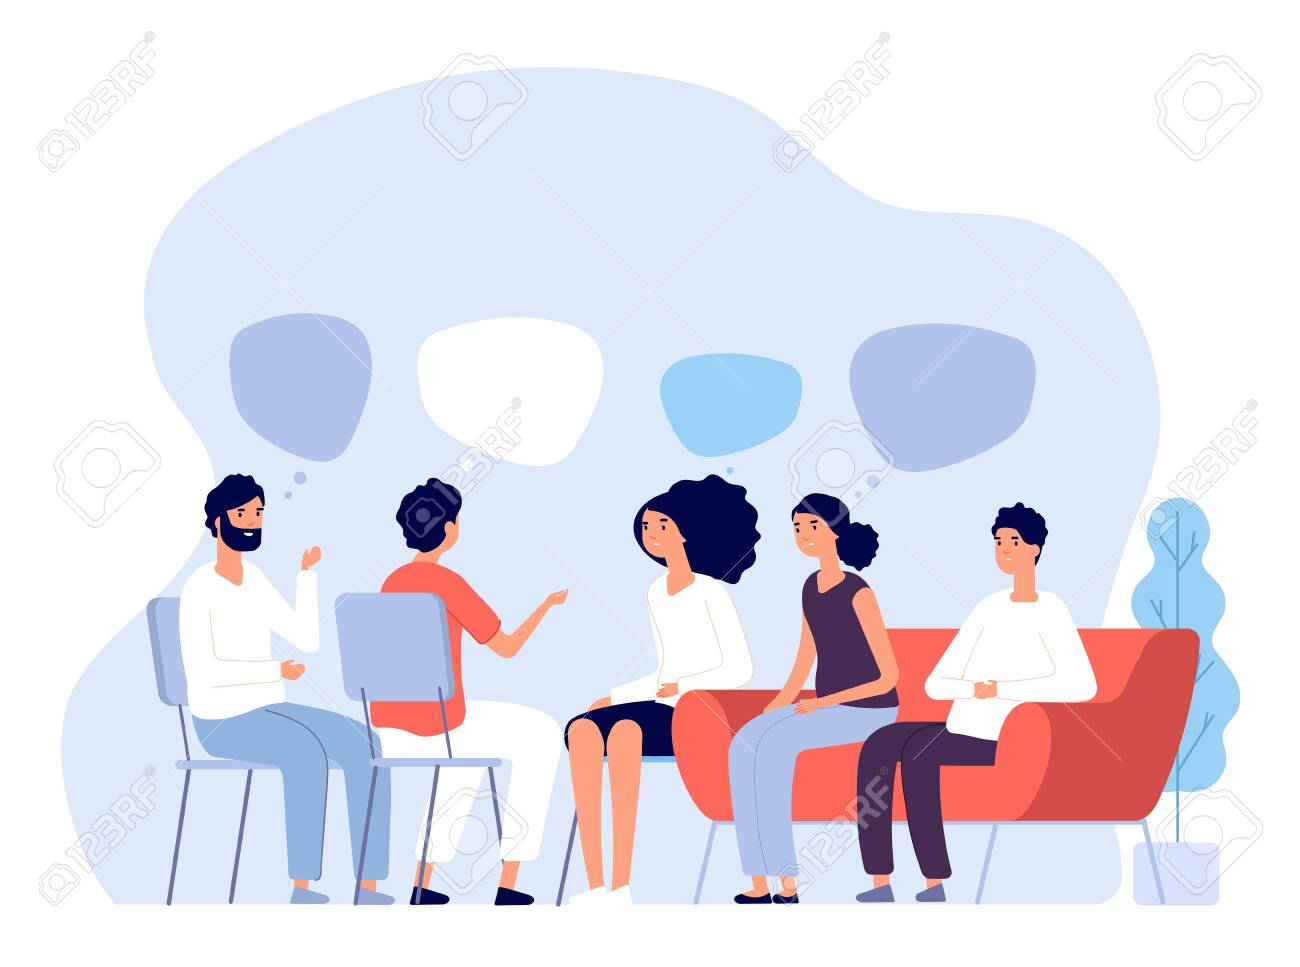 Addiction treatment concept. Group therapy, people counseling with psychologist, persons in psychotherapist sessions. Vector image. Illustration psychologist counseling group patient - 128173962